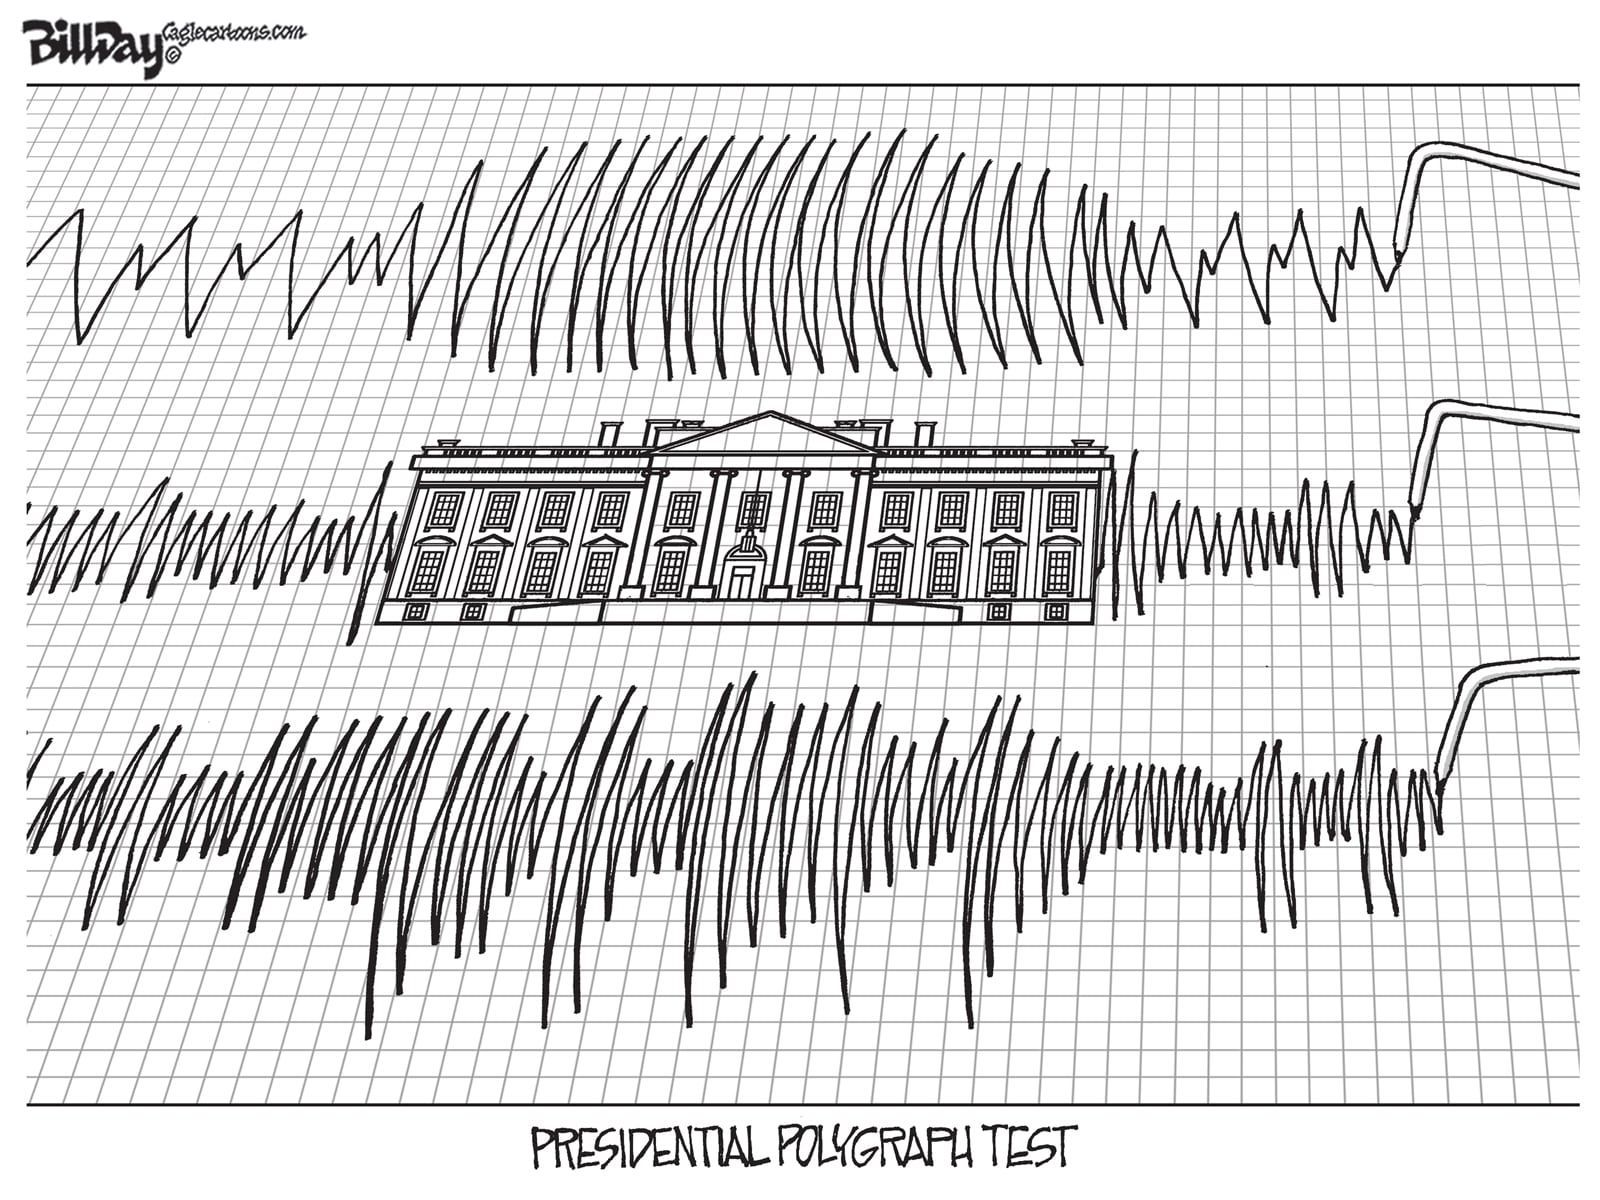 editorial cartoon presidential polygraph test politicususa